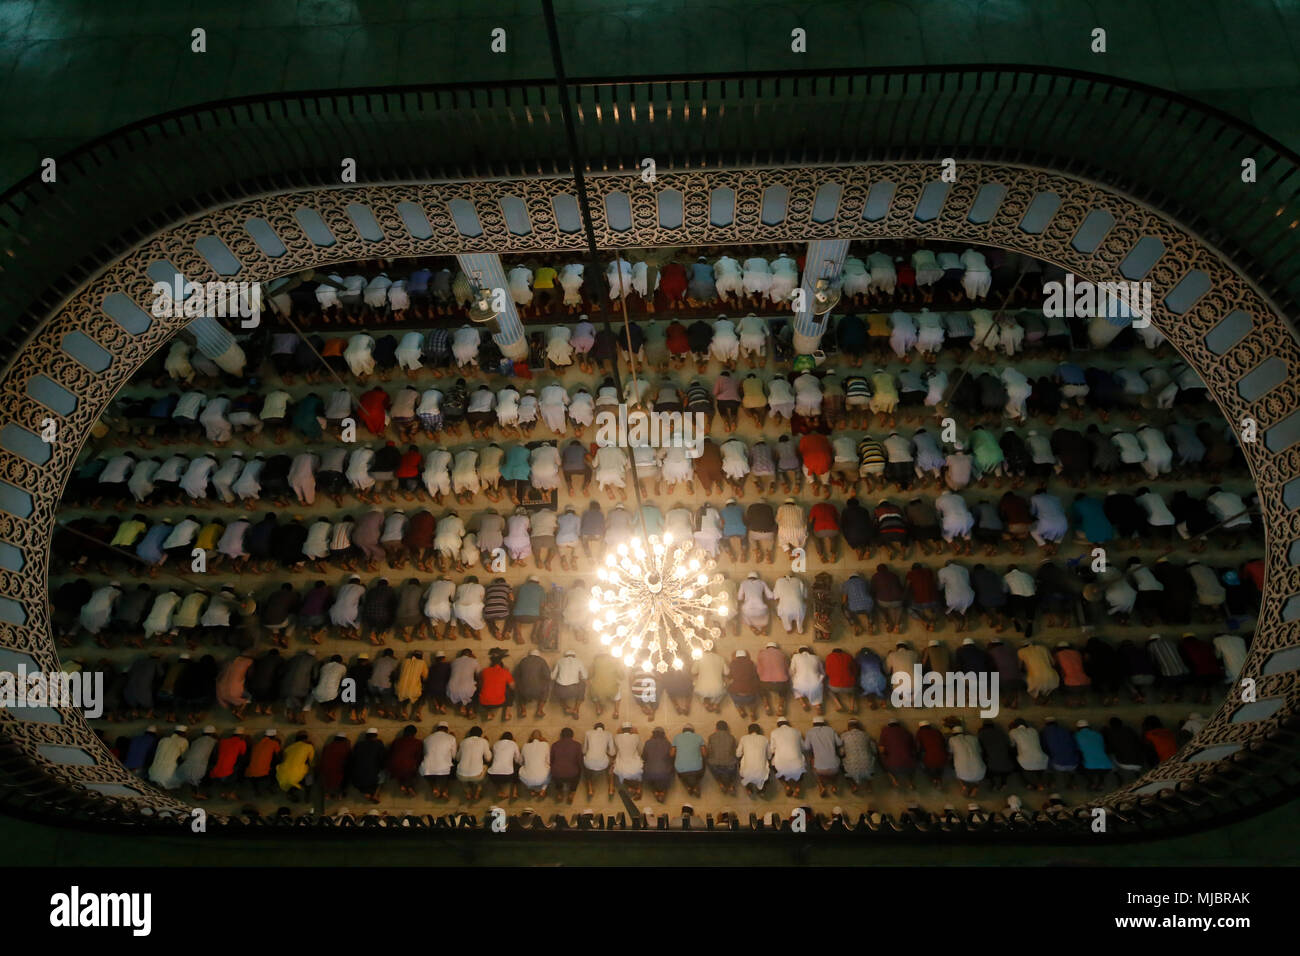 Bangladesh. Bangladeshi Muslims perform a prayer during the holy Shab-e-Barat night, known as the night of fortune at Baitul Mukarram National mosque in Dhaka, Bangladesh on May 01, 2018. Muslim devotees have been spend the night at mosques and homes offering prayers, reciting from the holy Quran and seeking blessings of Allah for long life, peace, progress and happiness for themselves, their families, relatives and friends. © Rehman Asad/Alamy Stock Photo - Stock Image